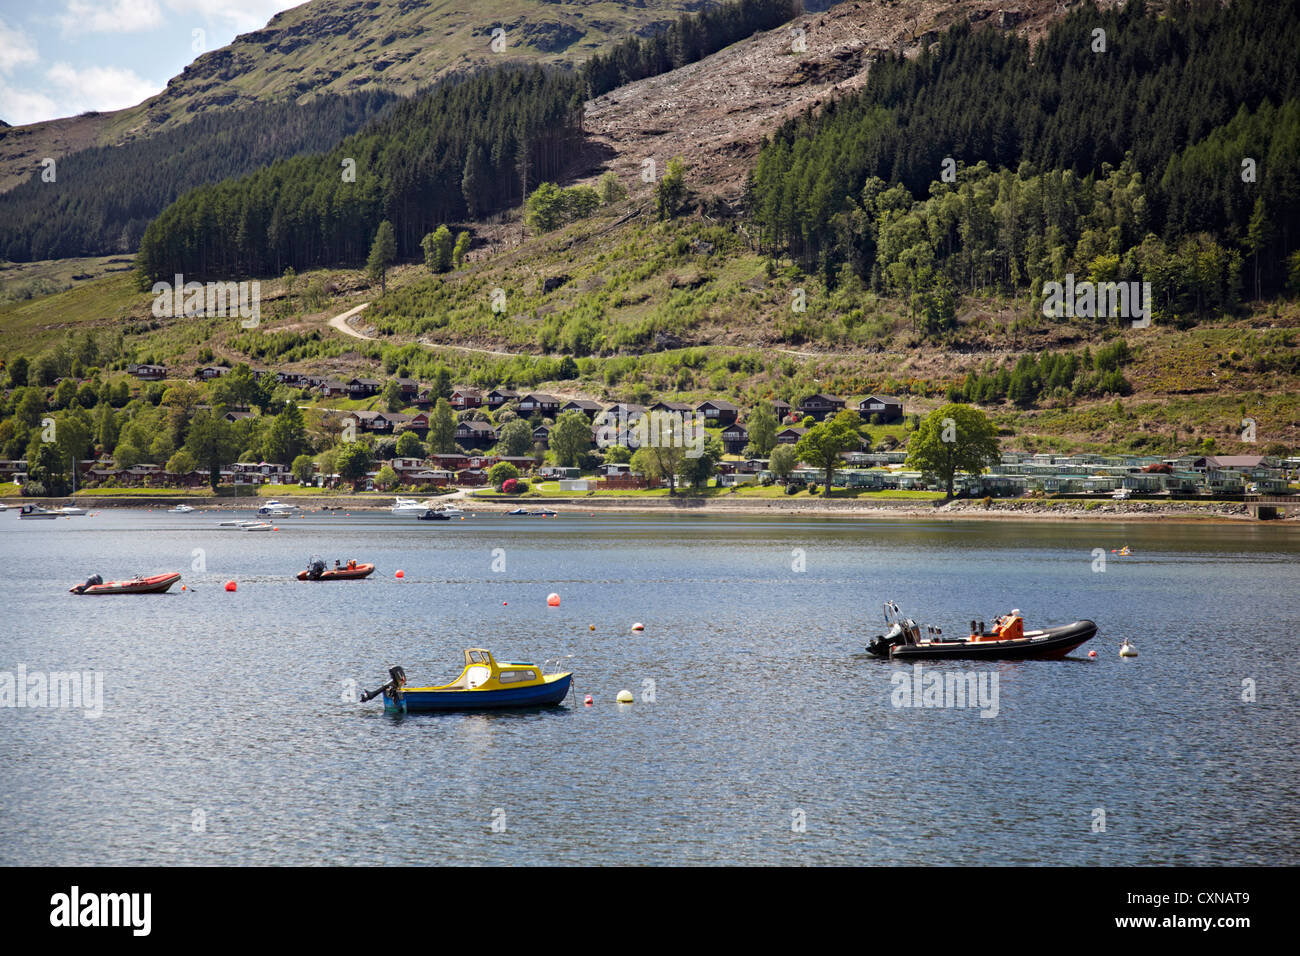 Holiday Lodges on the Drimsynie Estate at Lochgoilhead. Family fun Leisure centre. Stock Photo